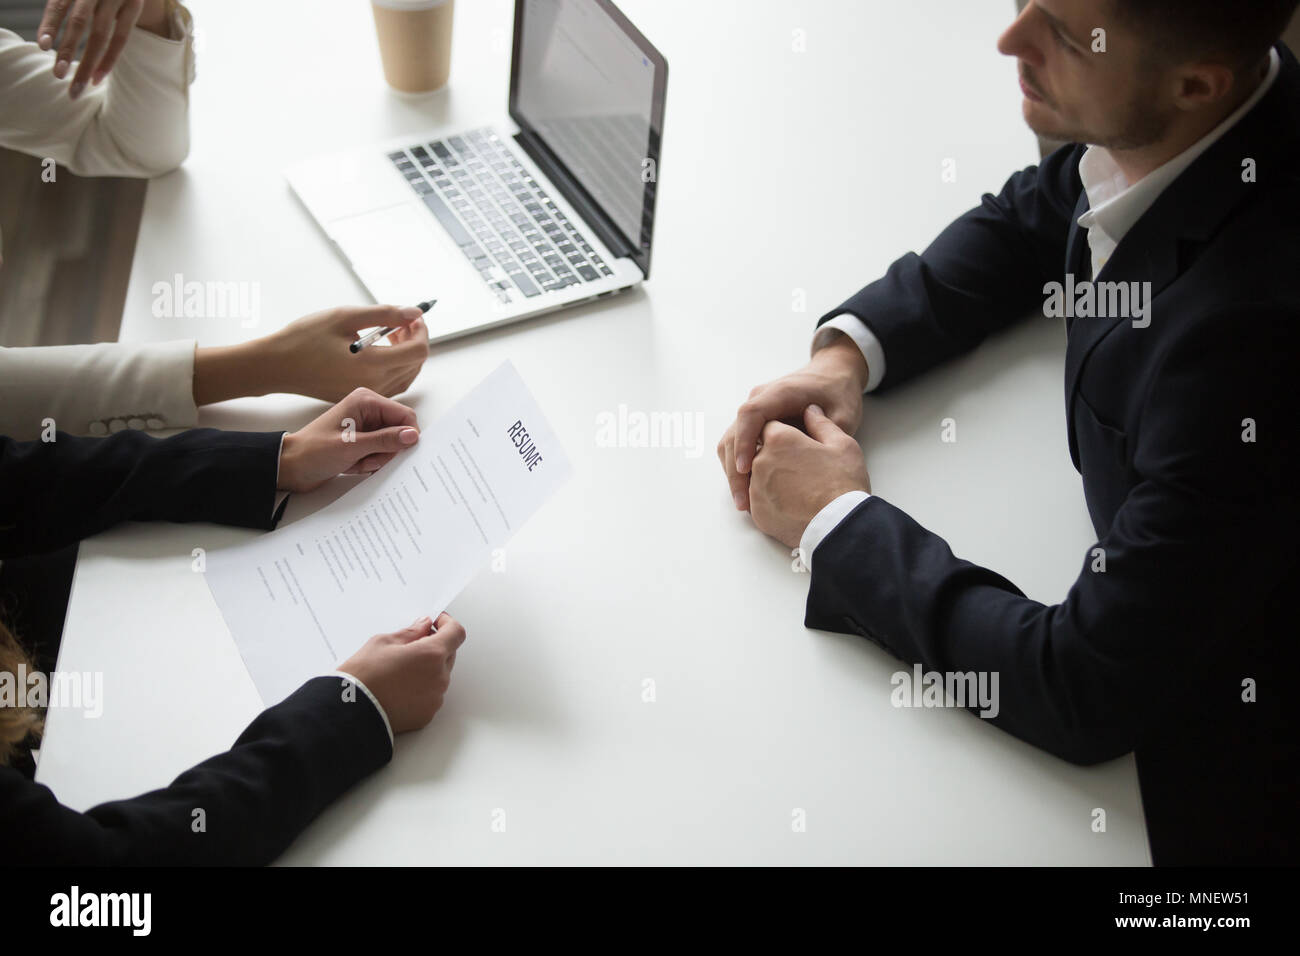 Male applicant having job interview - Stock Image